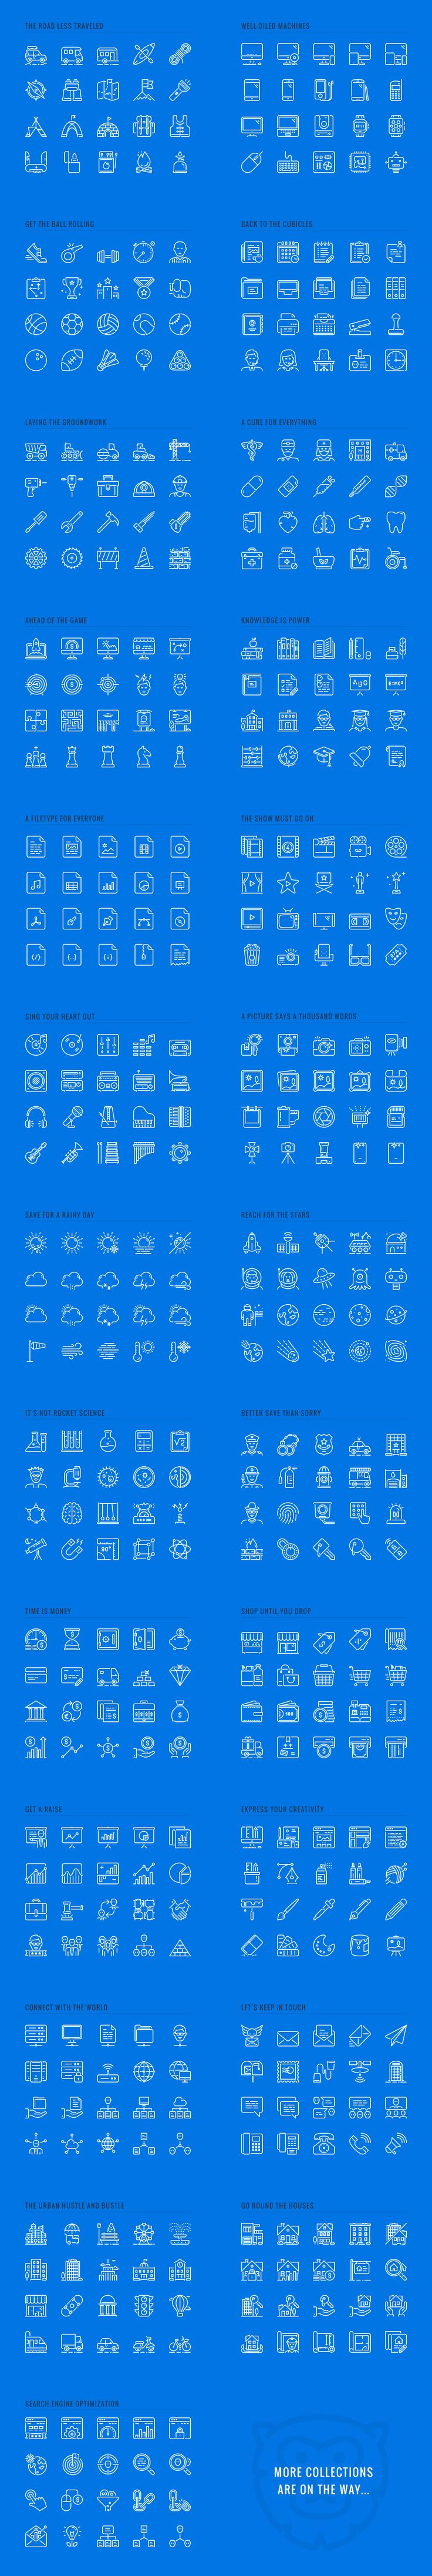 LineKing iOS Icons by Pixel Bazaar on Creative Market